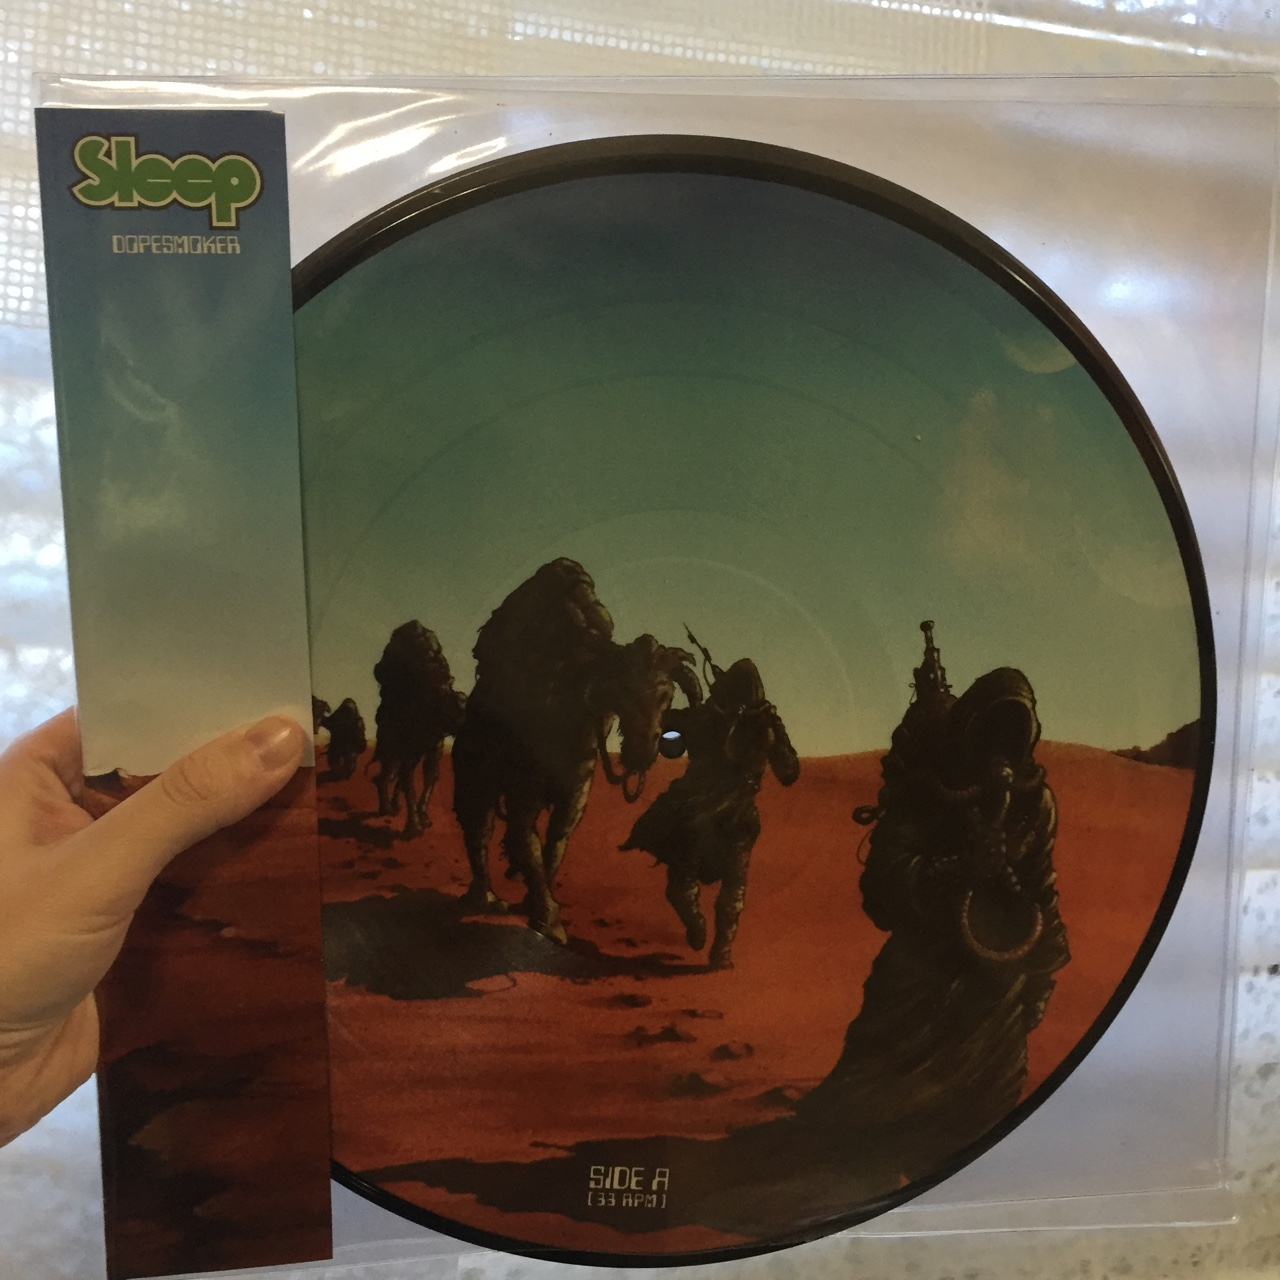 Sleep Dopesmoker Vinyl  Beautiful limited edition    - Depop